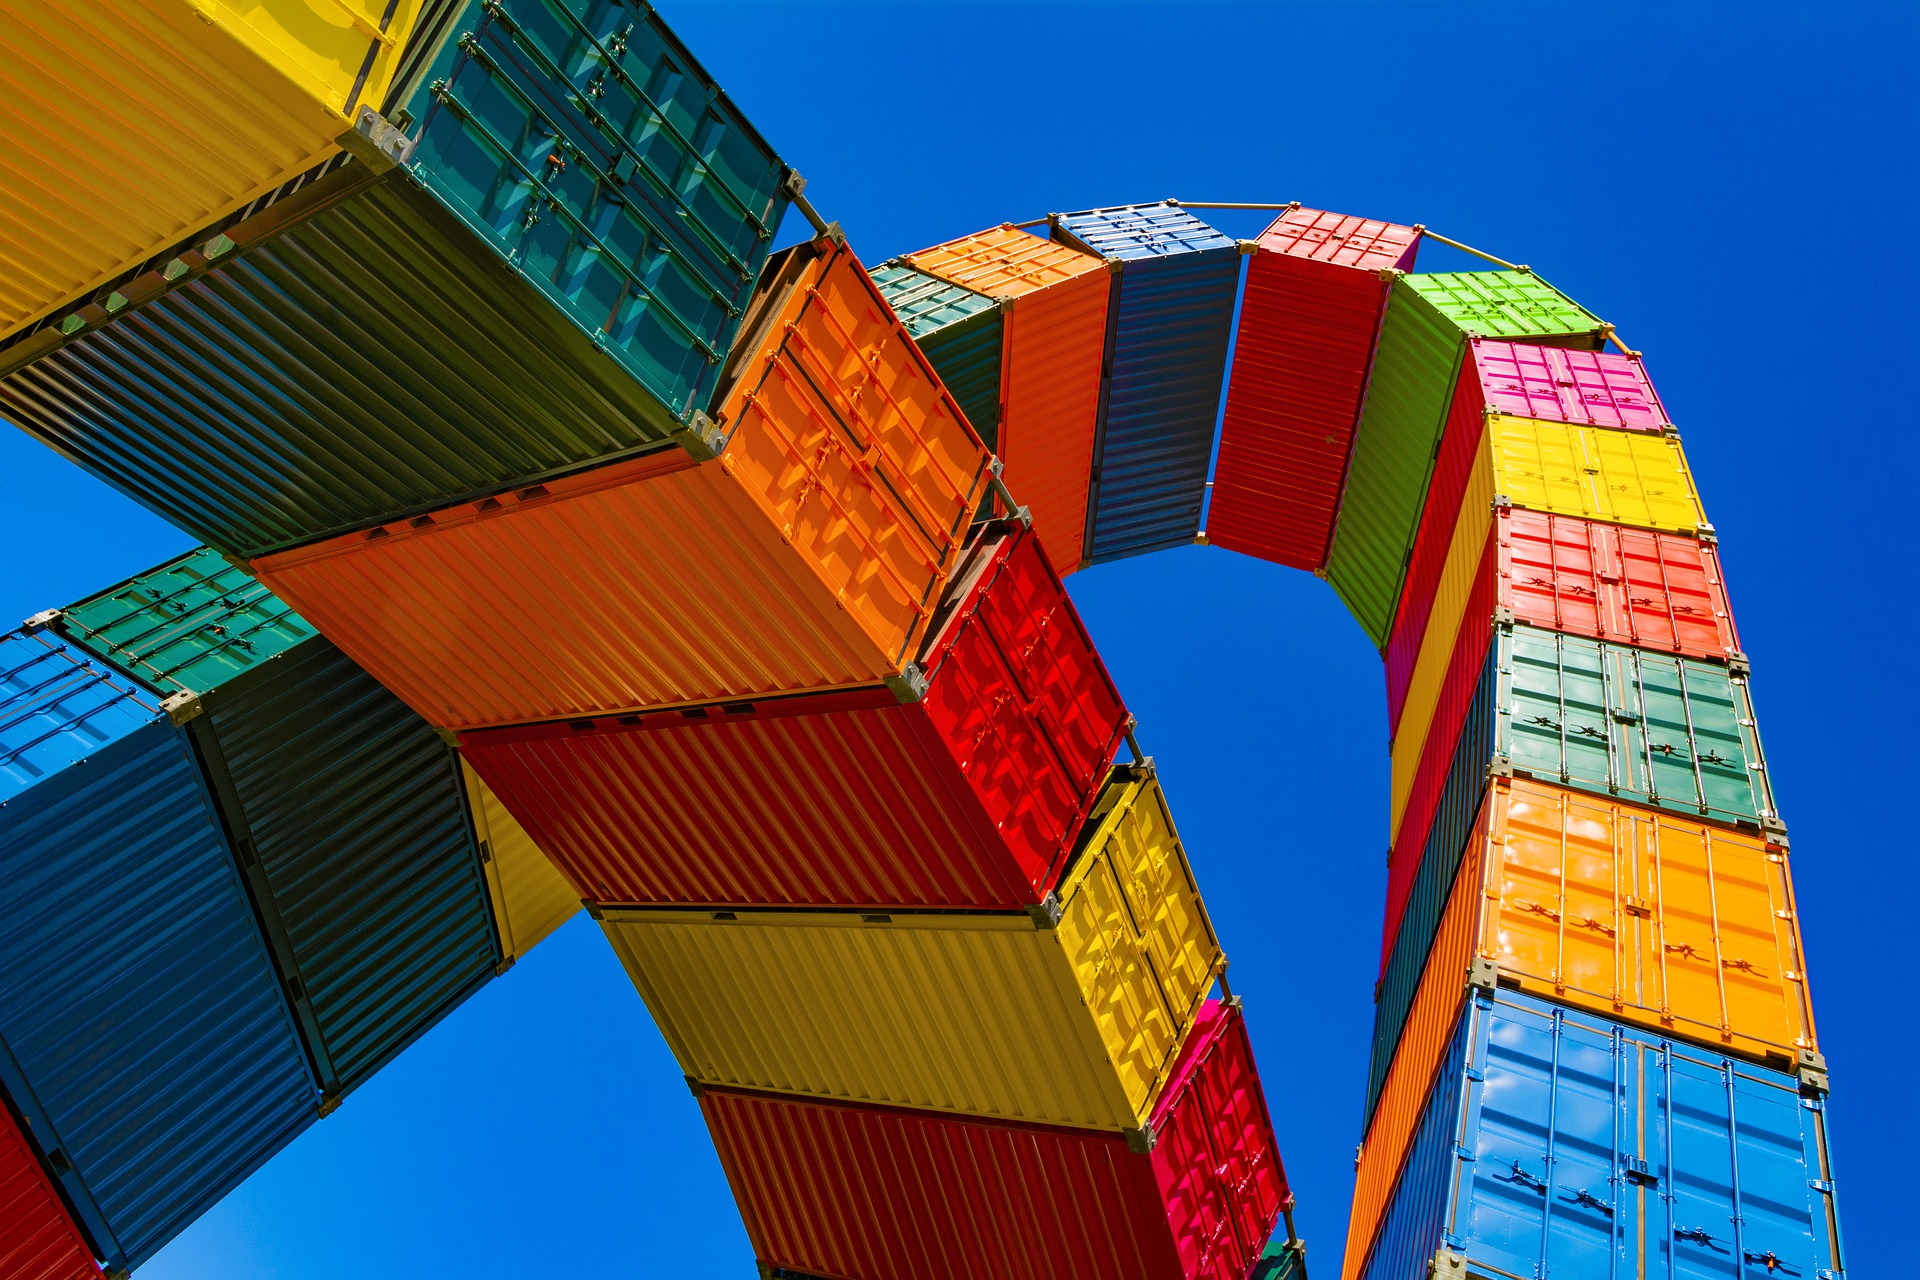 Colorful Shipping Containers Sky High View